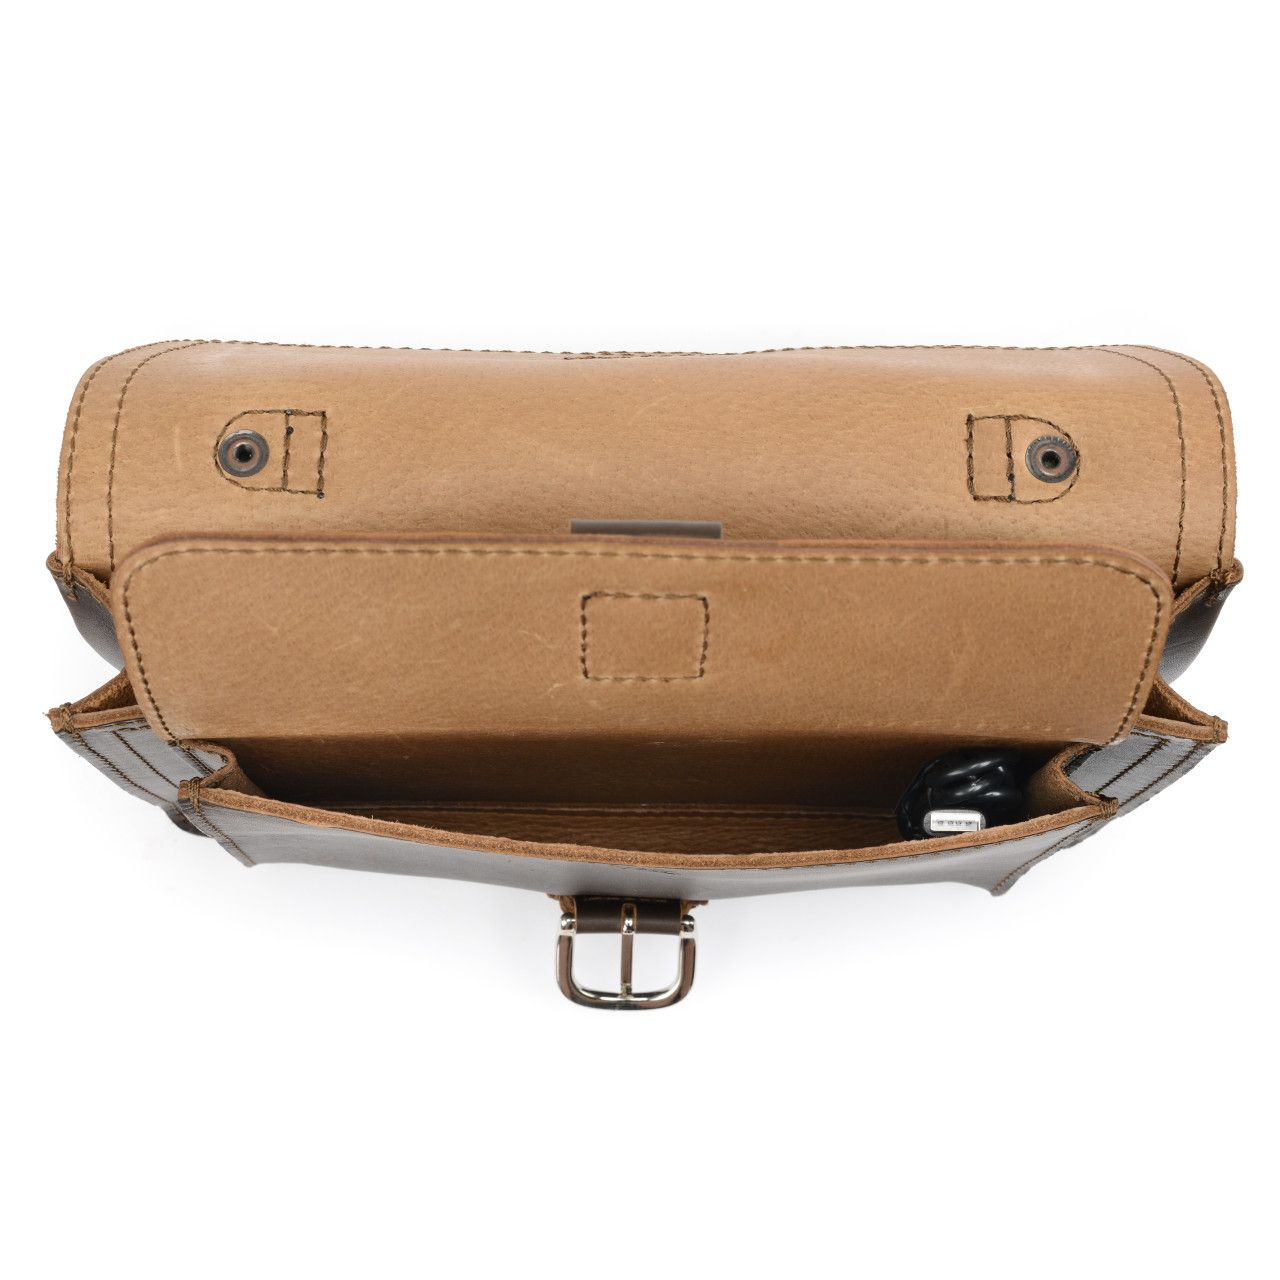 leather tablet messenger bag in dark coffee brown leather